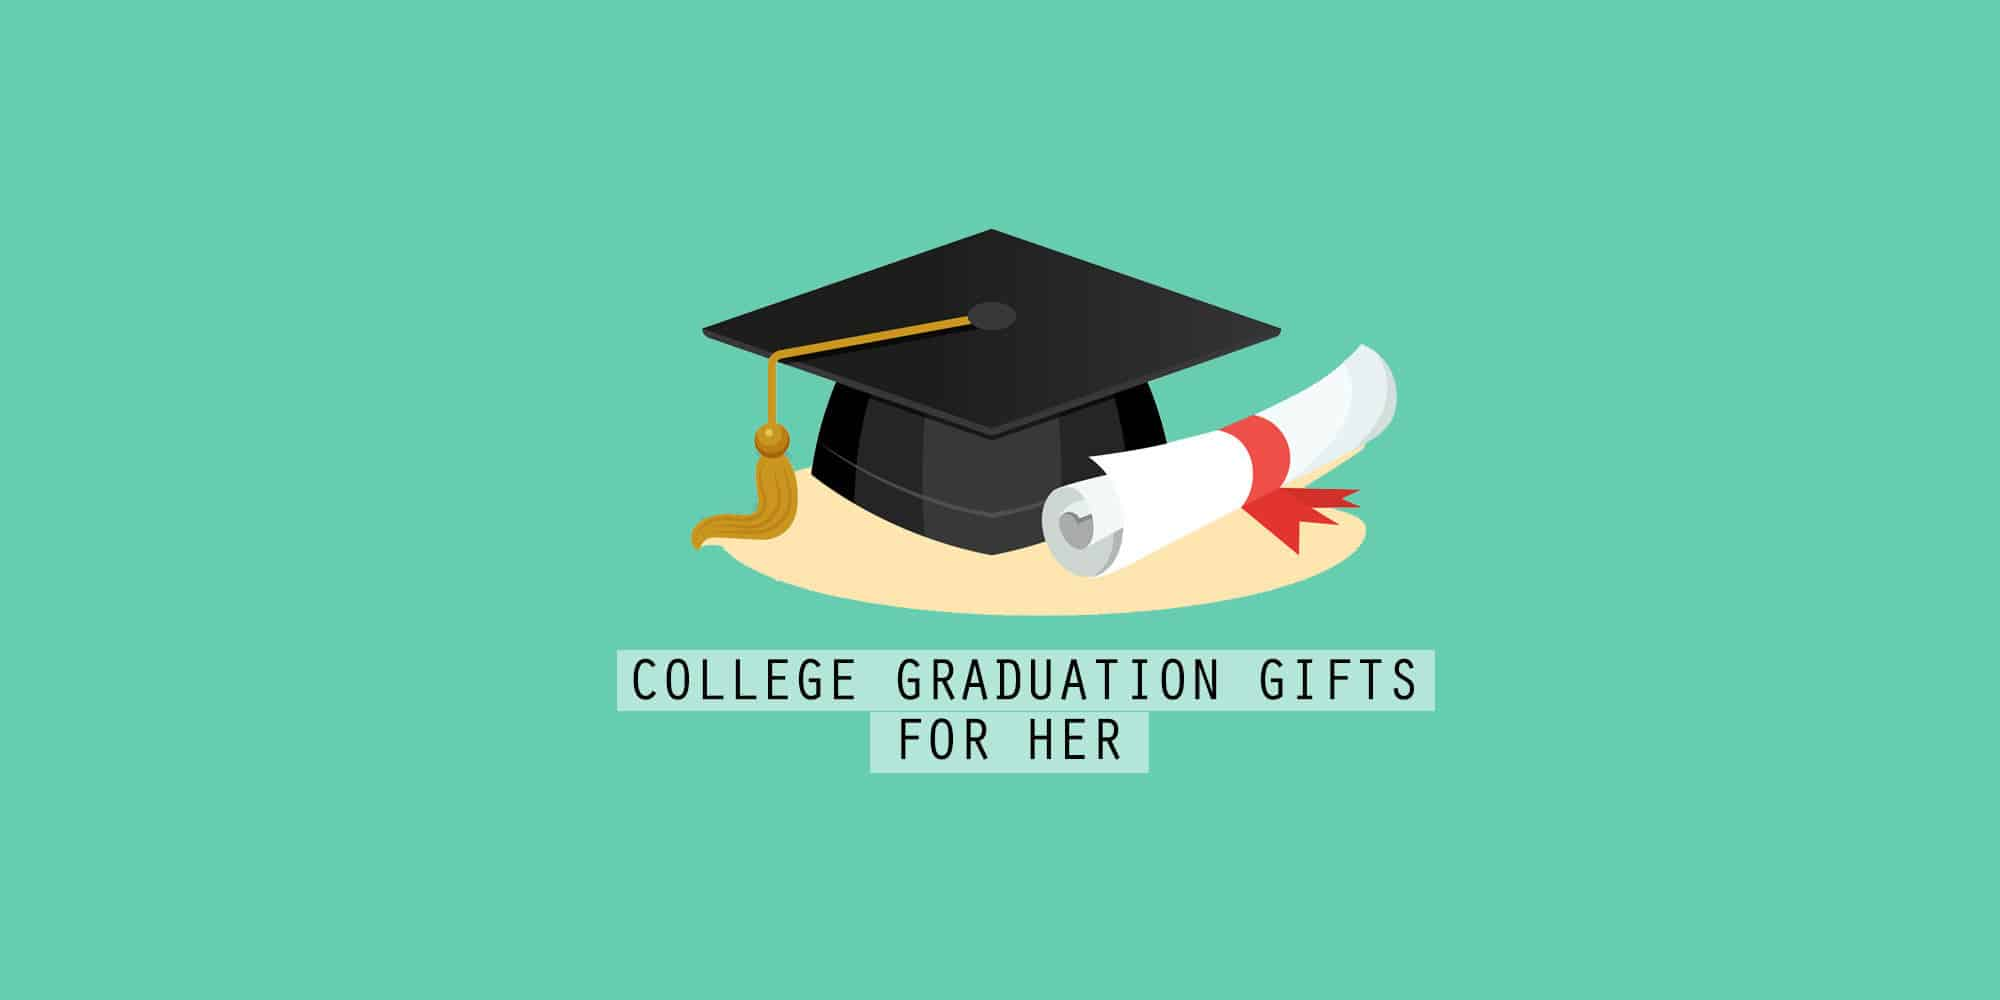 40+ Best College Graduation Gifts For Her That Every Graduate Will Love (2021)